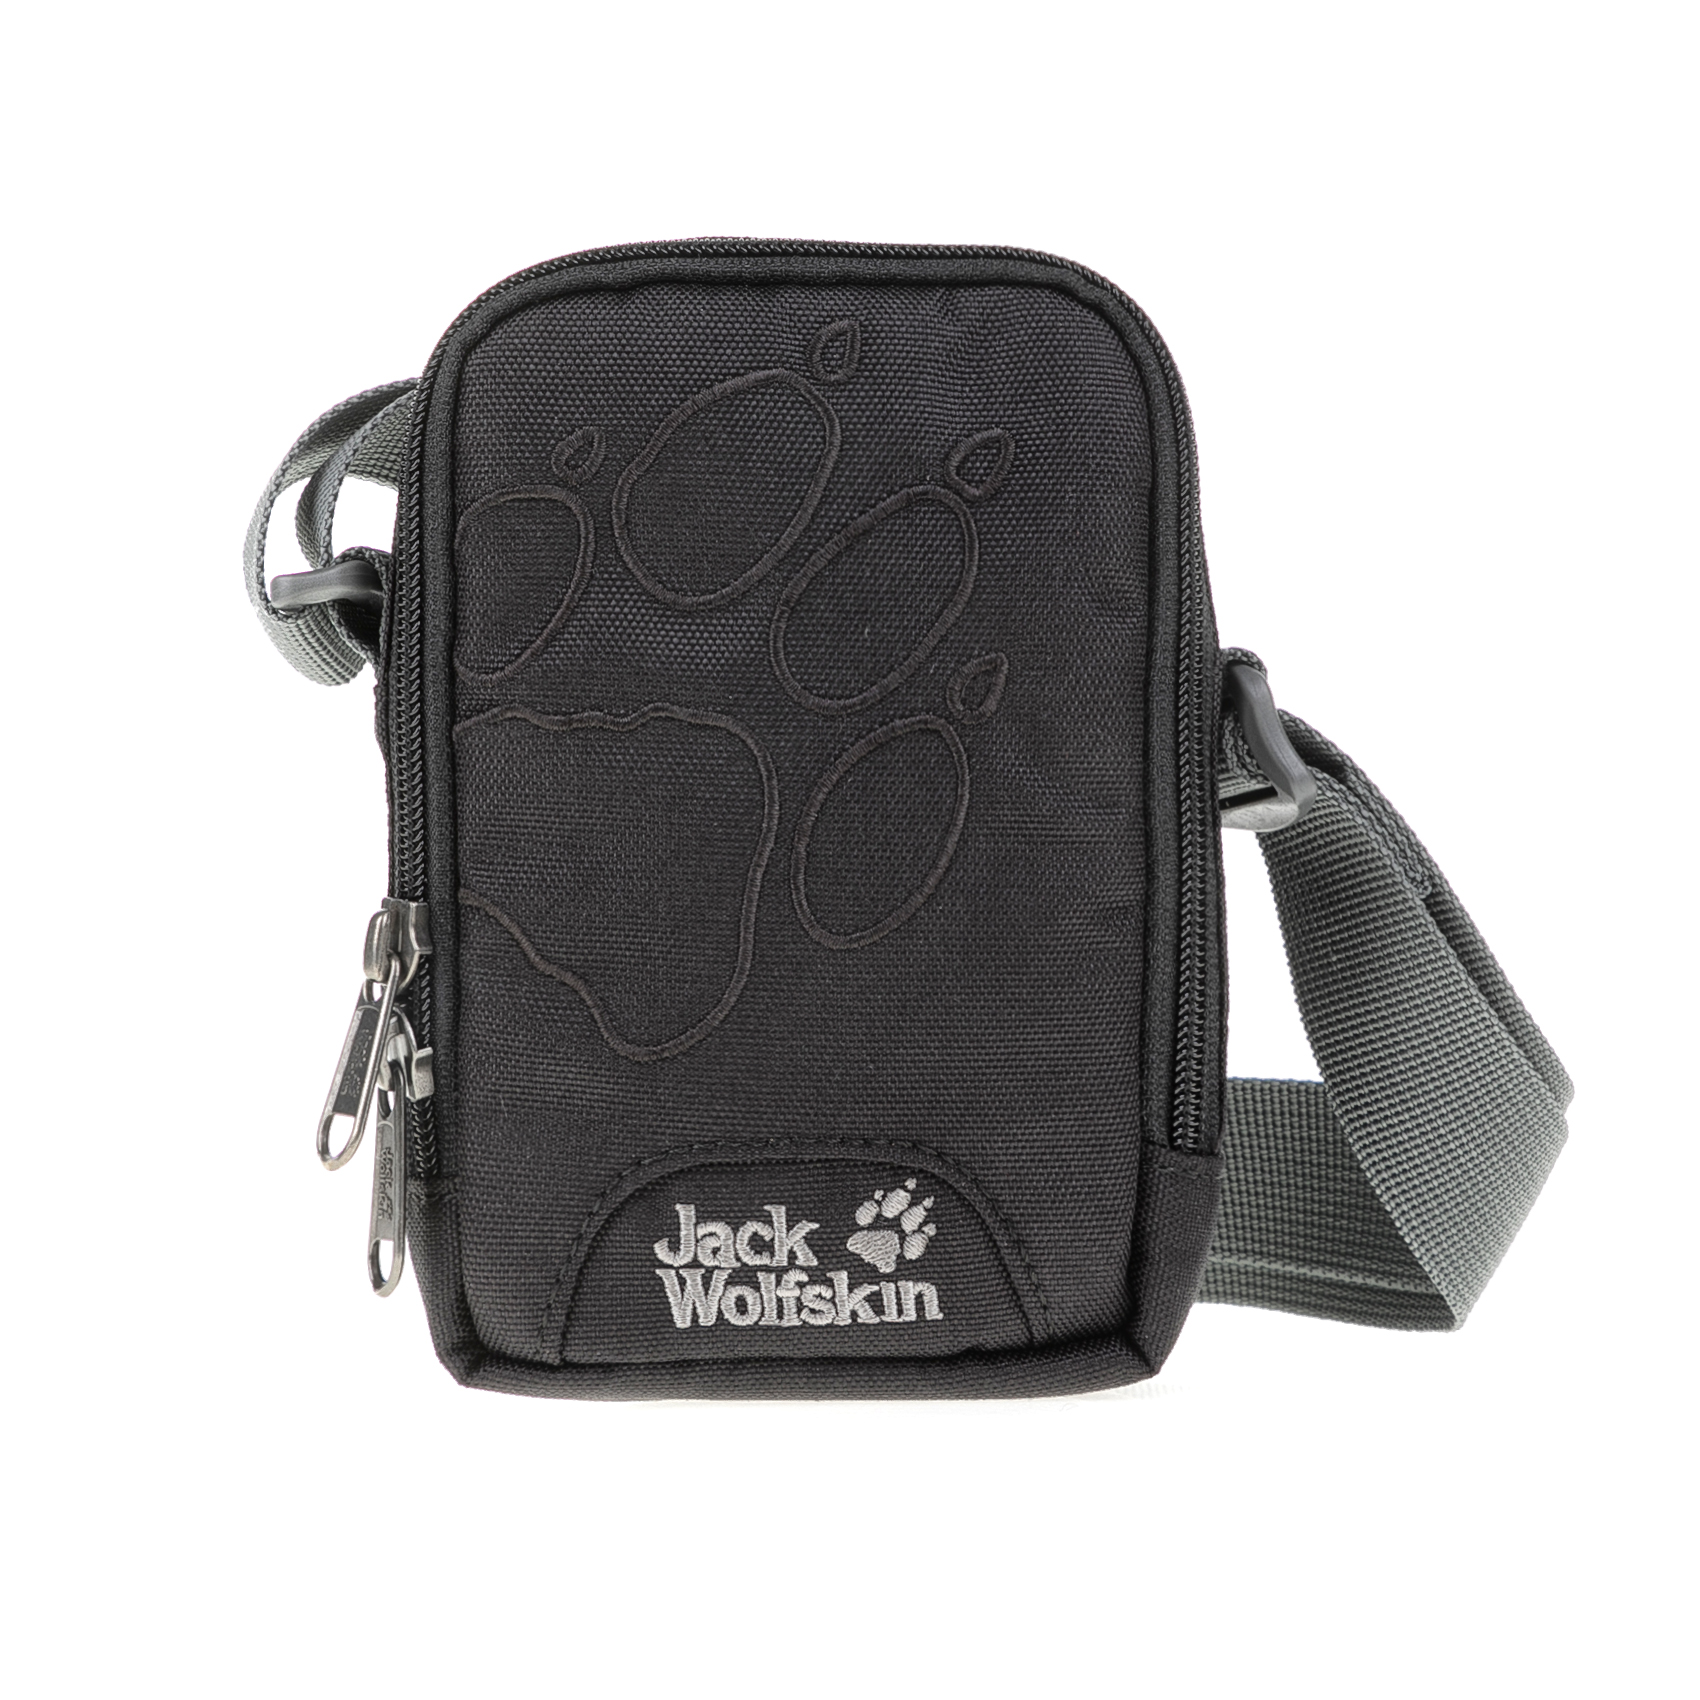 JACK WOLFSKIN – Τσαντάκι ώμου SECRETARY SHOULDER BAG EQUIPM JACK WOLFSKIN μαύρο 1635946.0-0071